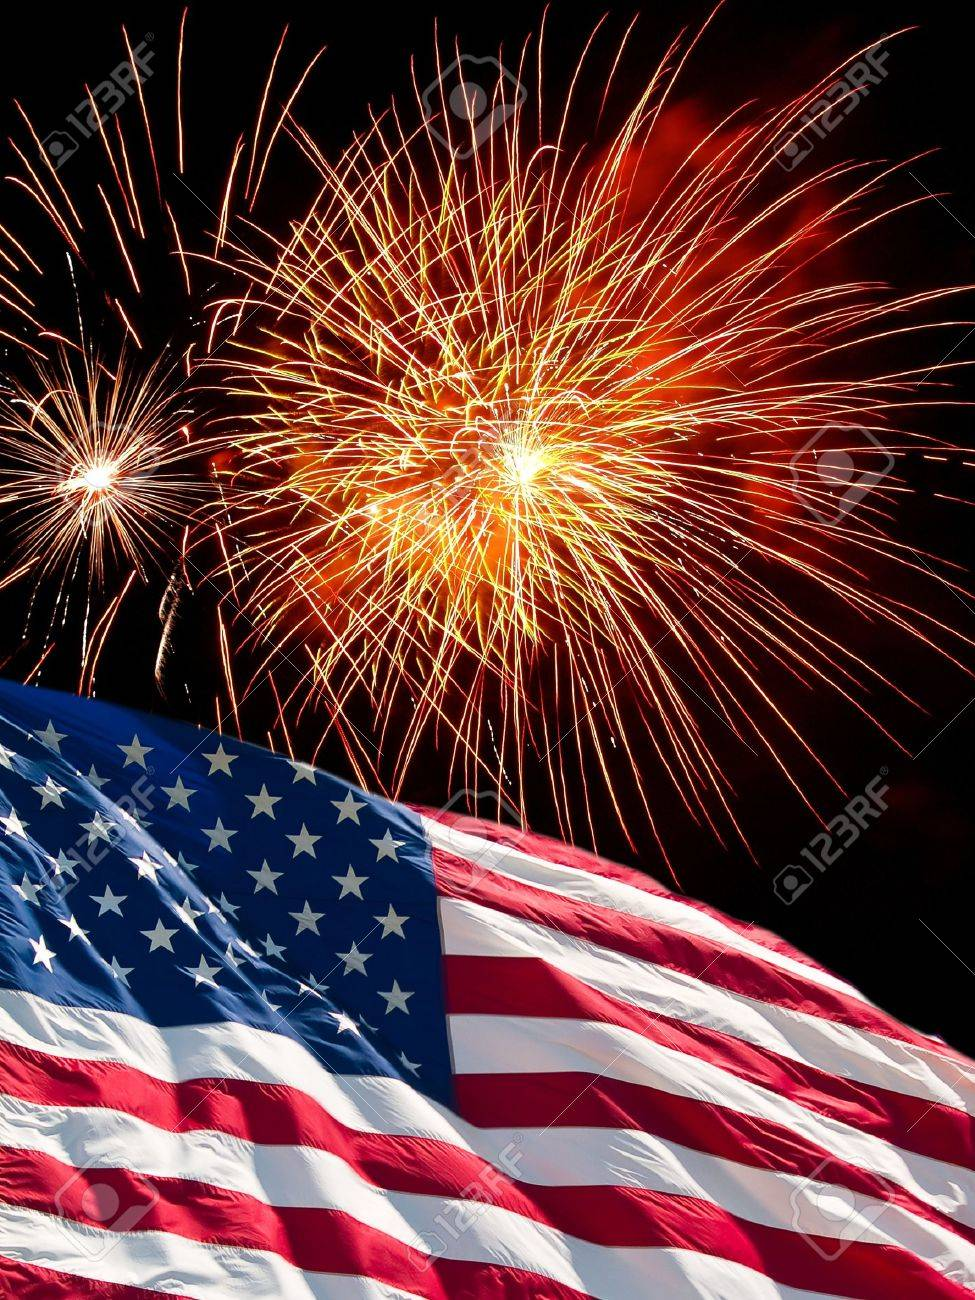 The American Flag and Fireworks from Independence Day Stock Photo - 8549308